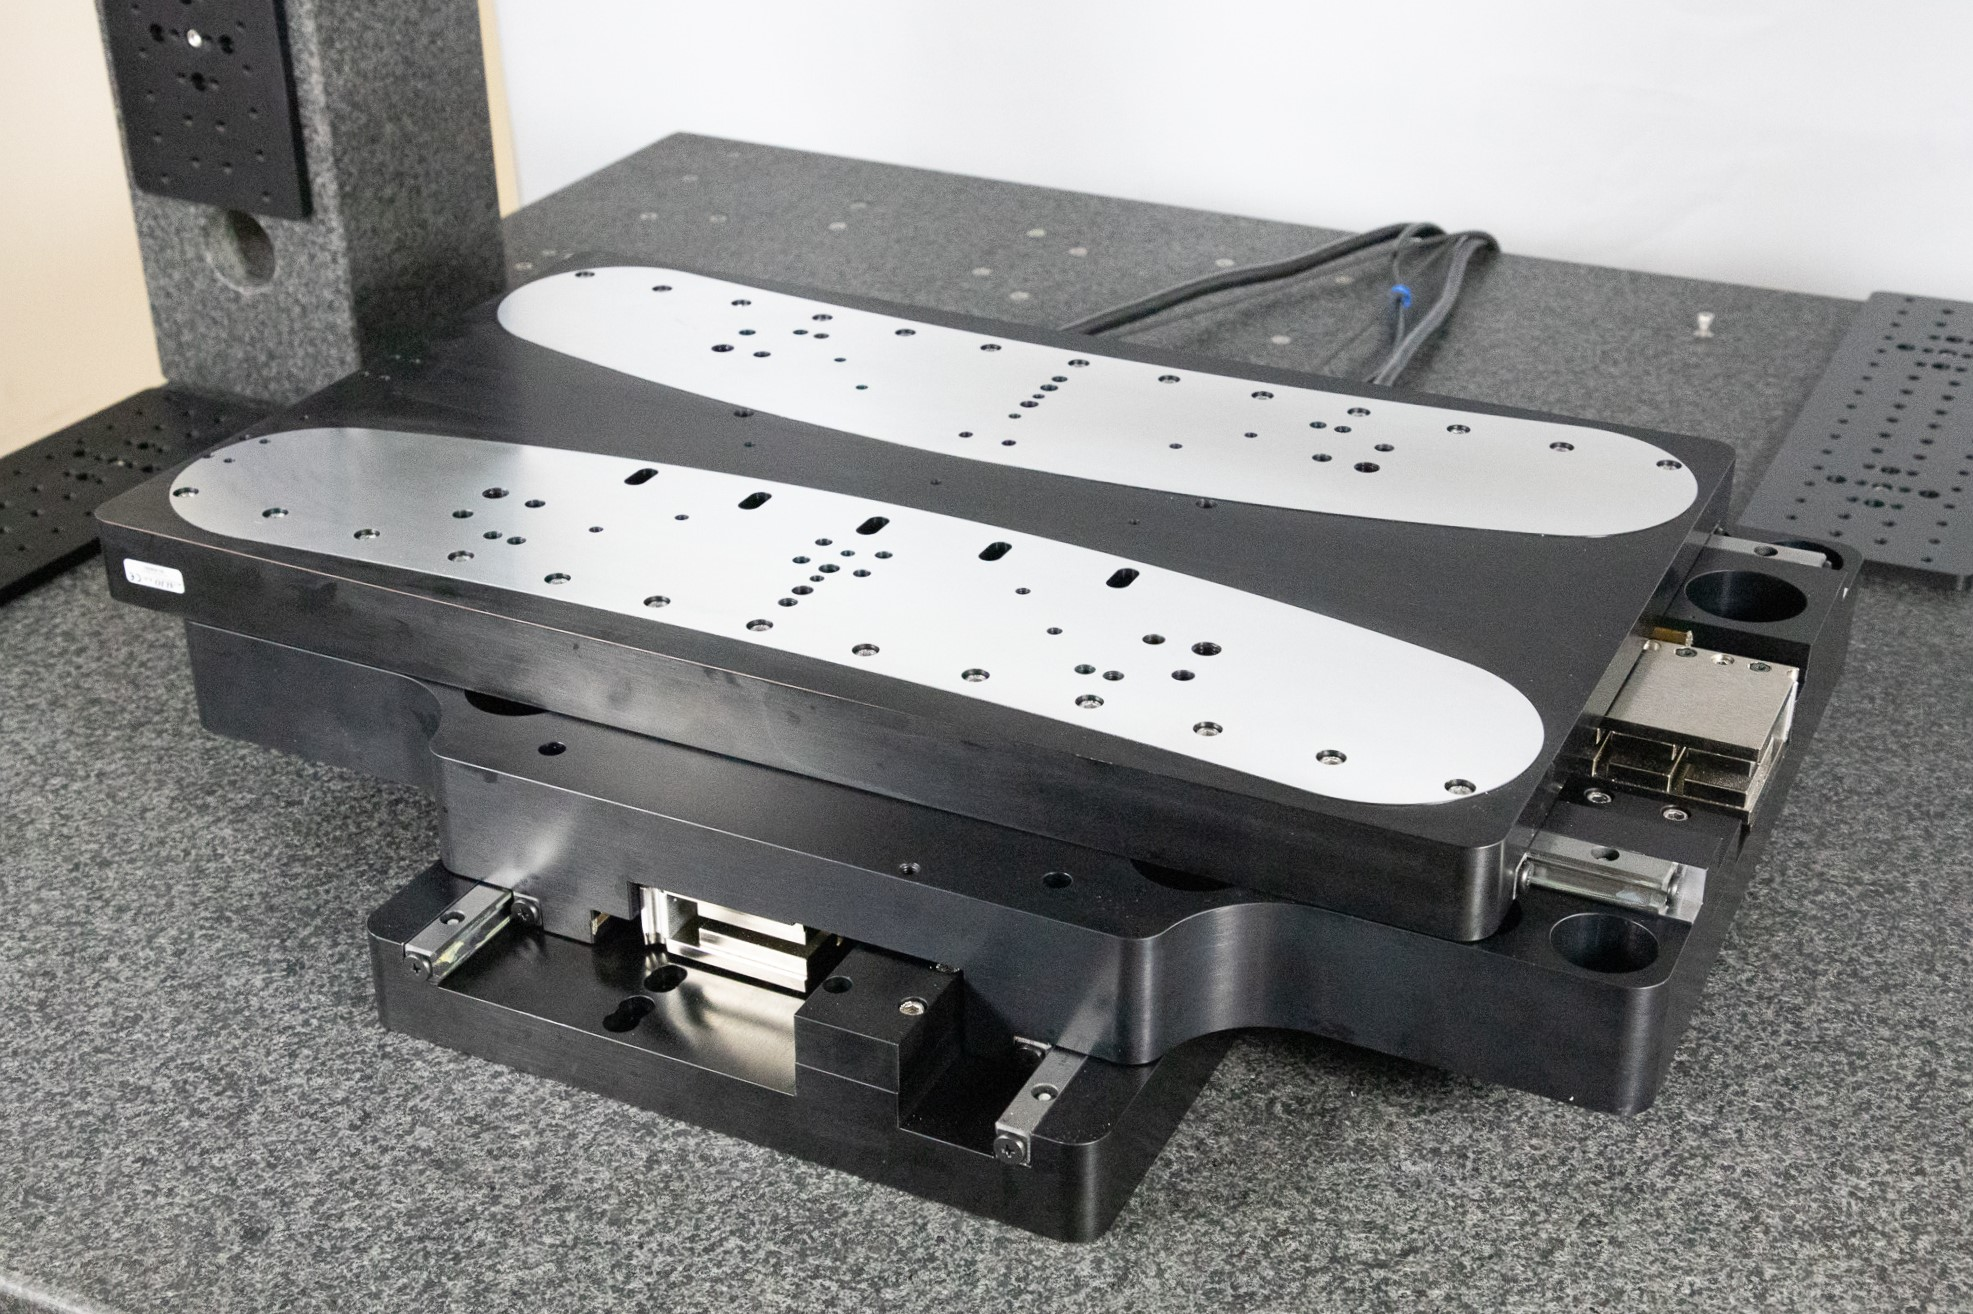 ALIO Industries has just announced another innovative nanomater-level precision positioning solution, its new Asymmetric XY stages